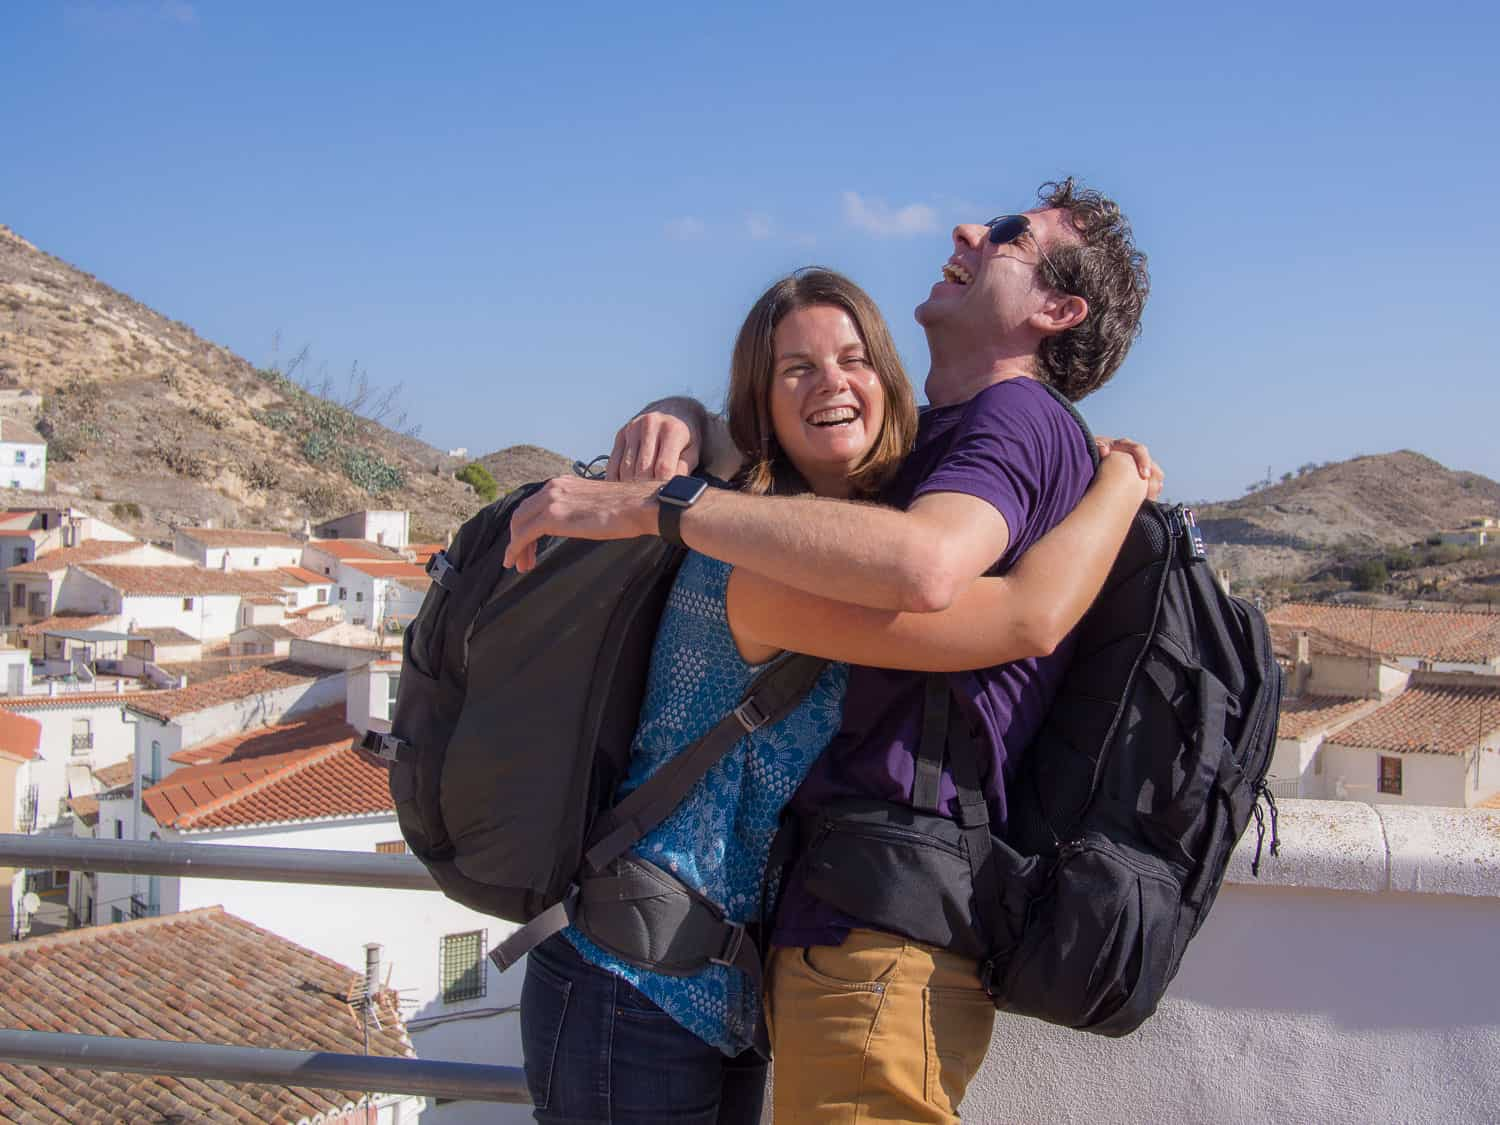 Erin and Simon with carry on backpacks in Lubrin, Spain